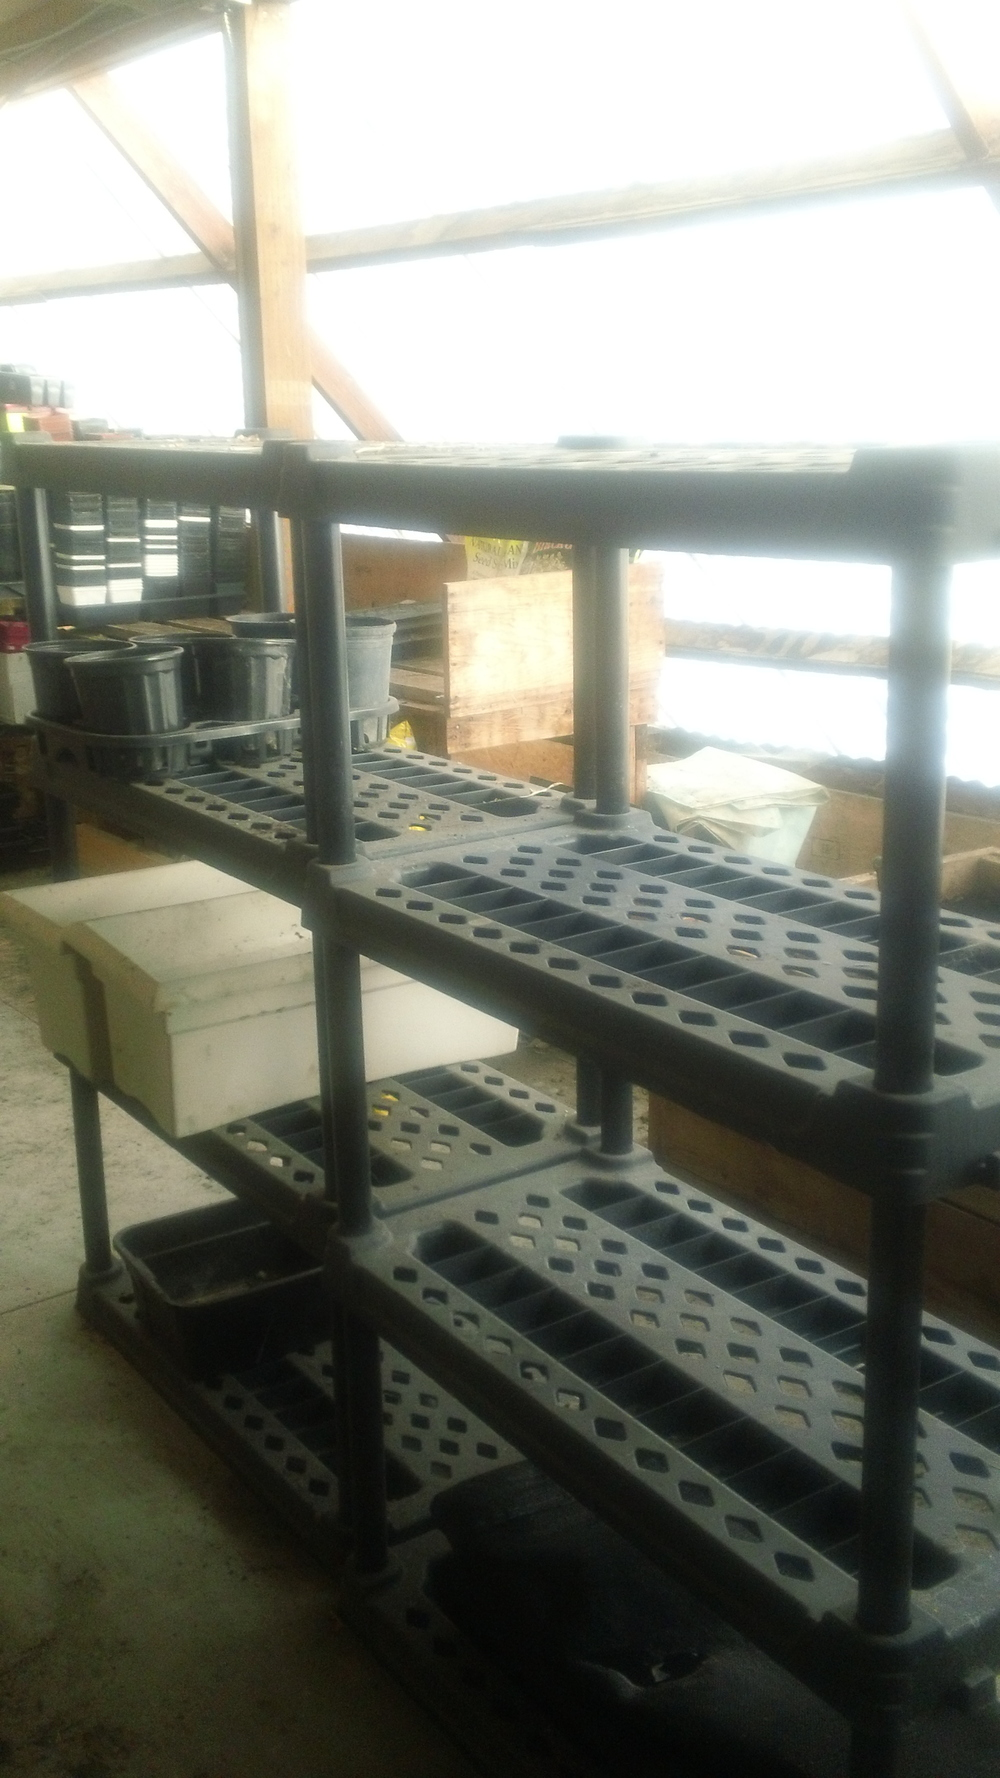 Center aisle shelving ready for seedling trays later this season